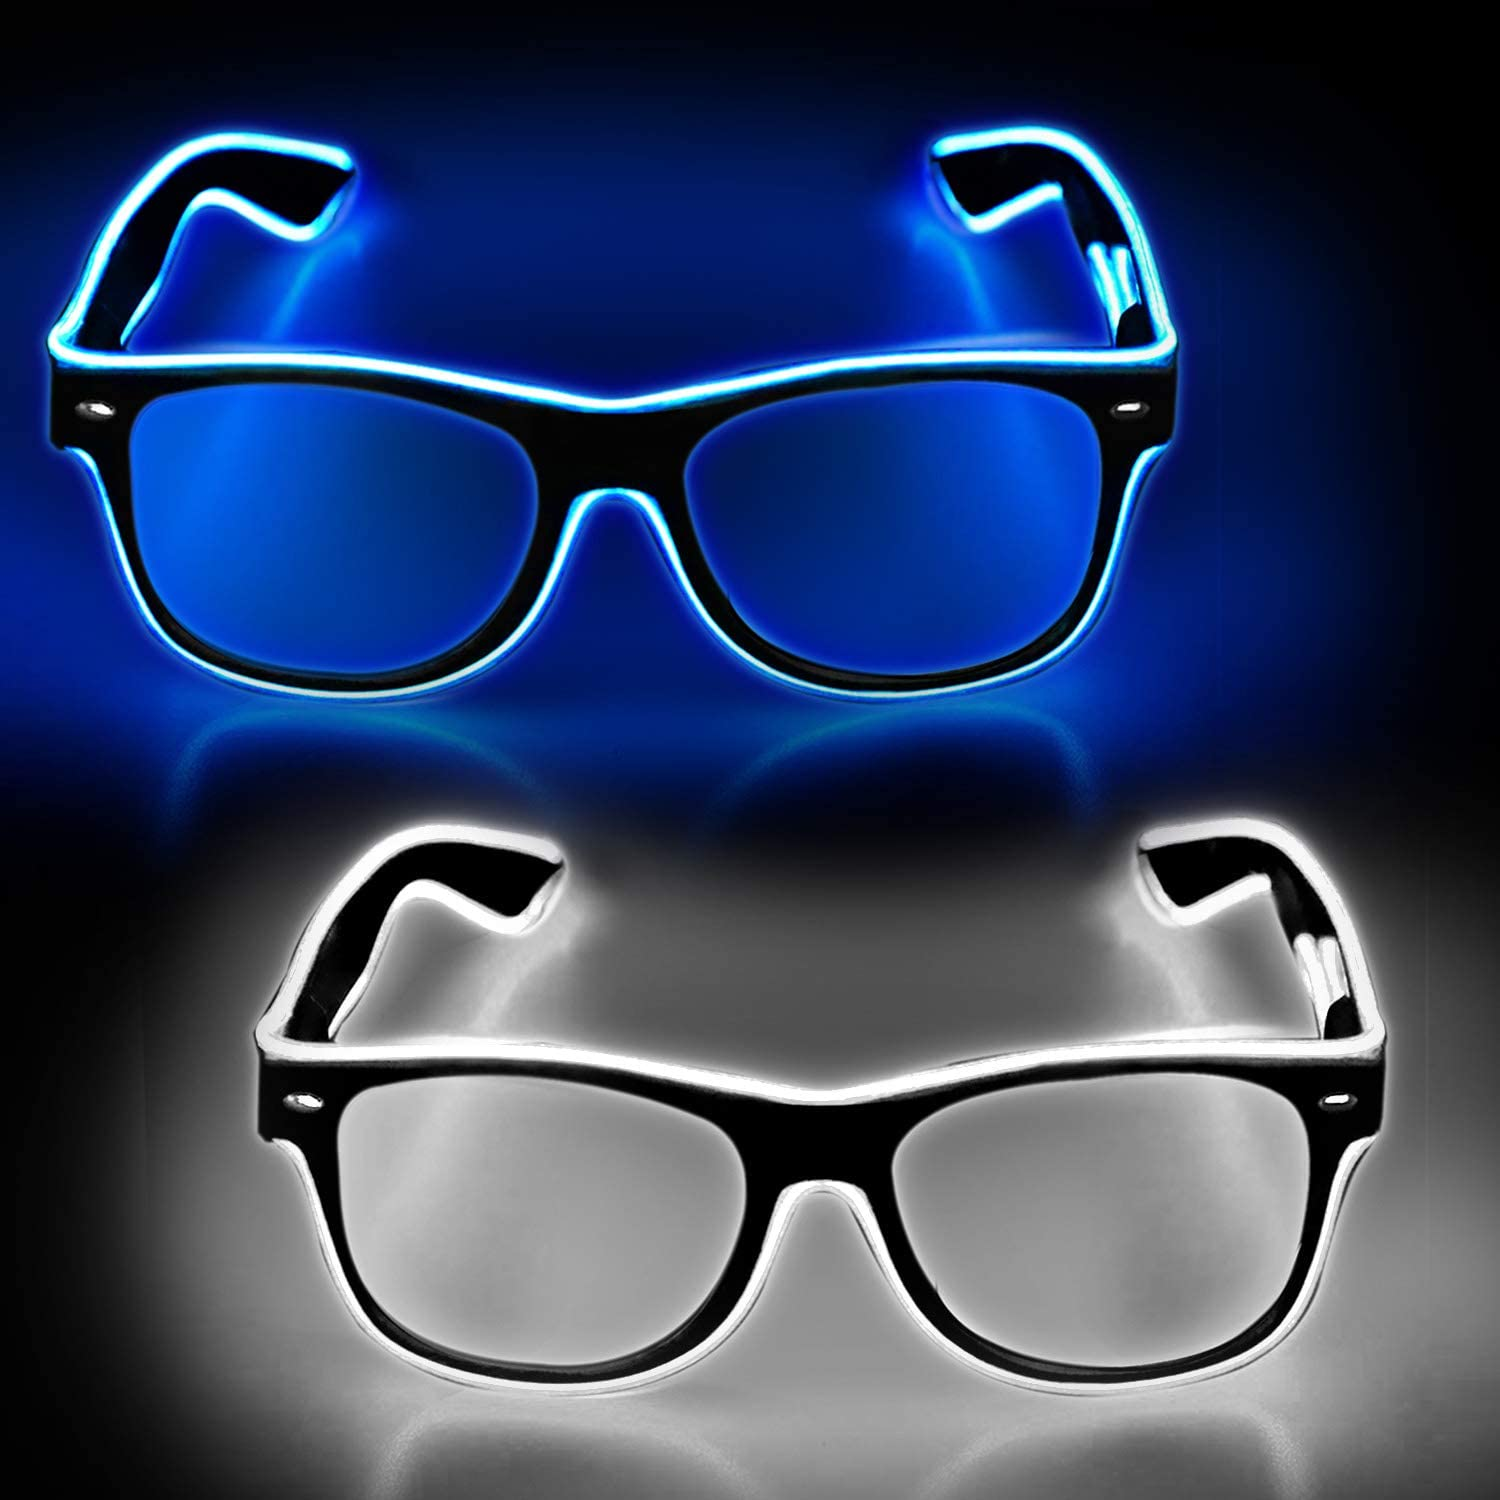 Concert with EL Wire Flashing and Blinking Modes EDM Disco YouRfocus 2 Packs Light Up Rave Glasses Blue and Pink LED Sunglasses for Halloween Christmas Party